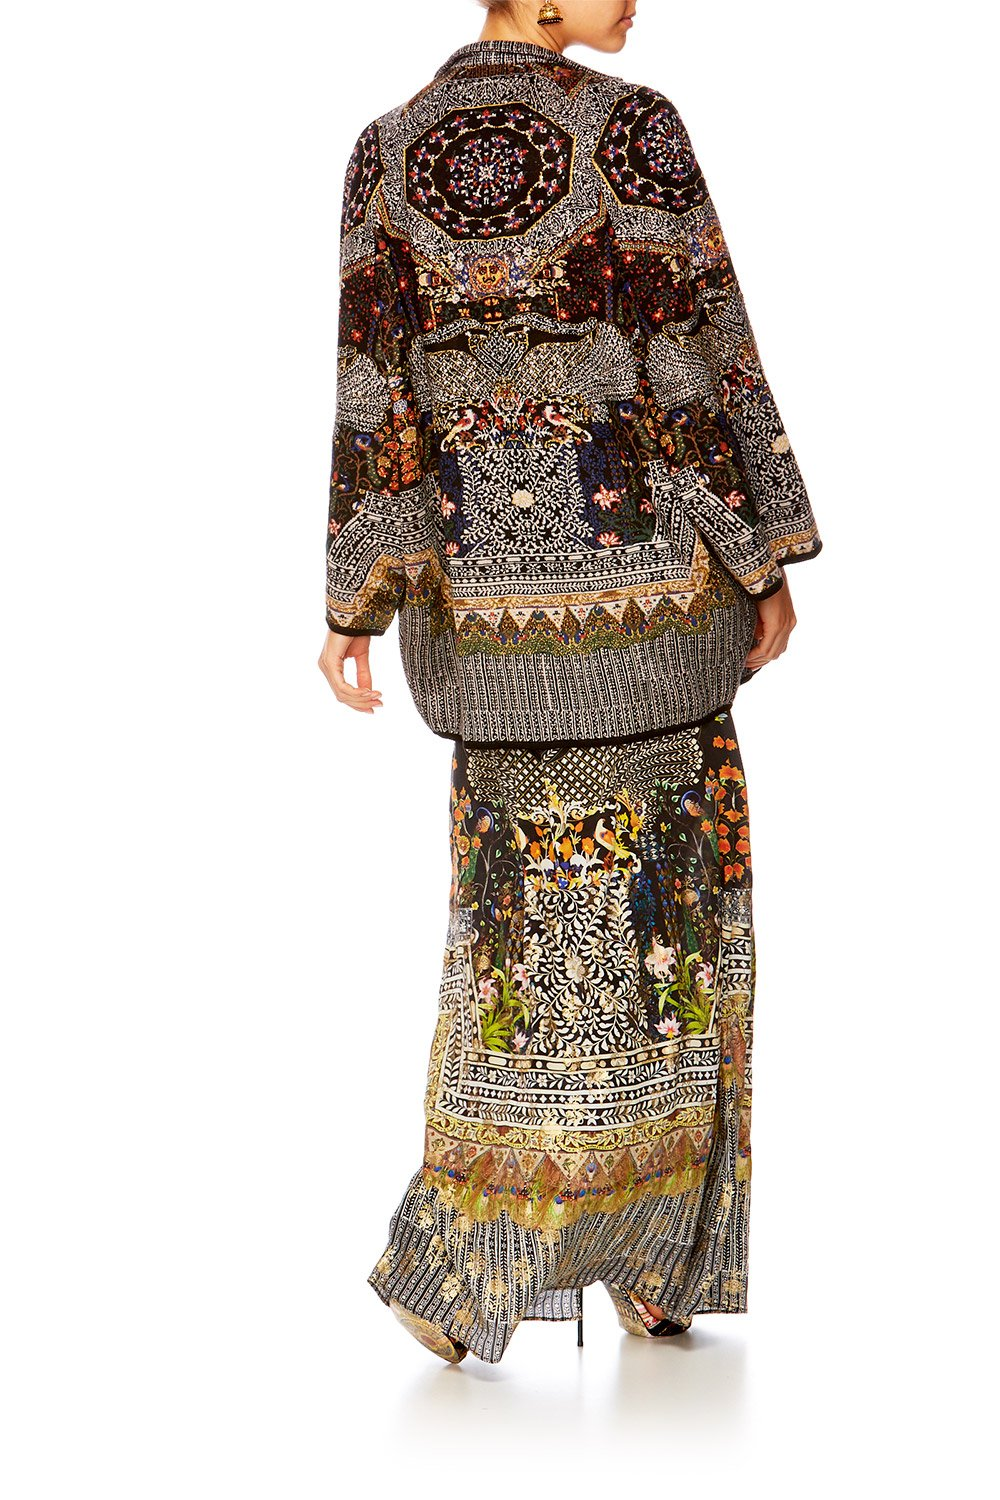 BEHIND CLOSED DOORS KNITTED COCOON PONCHO